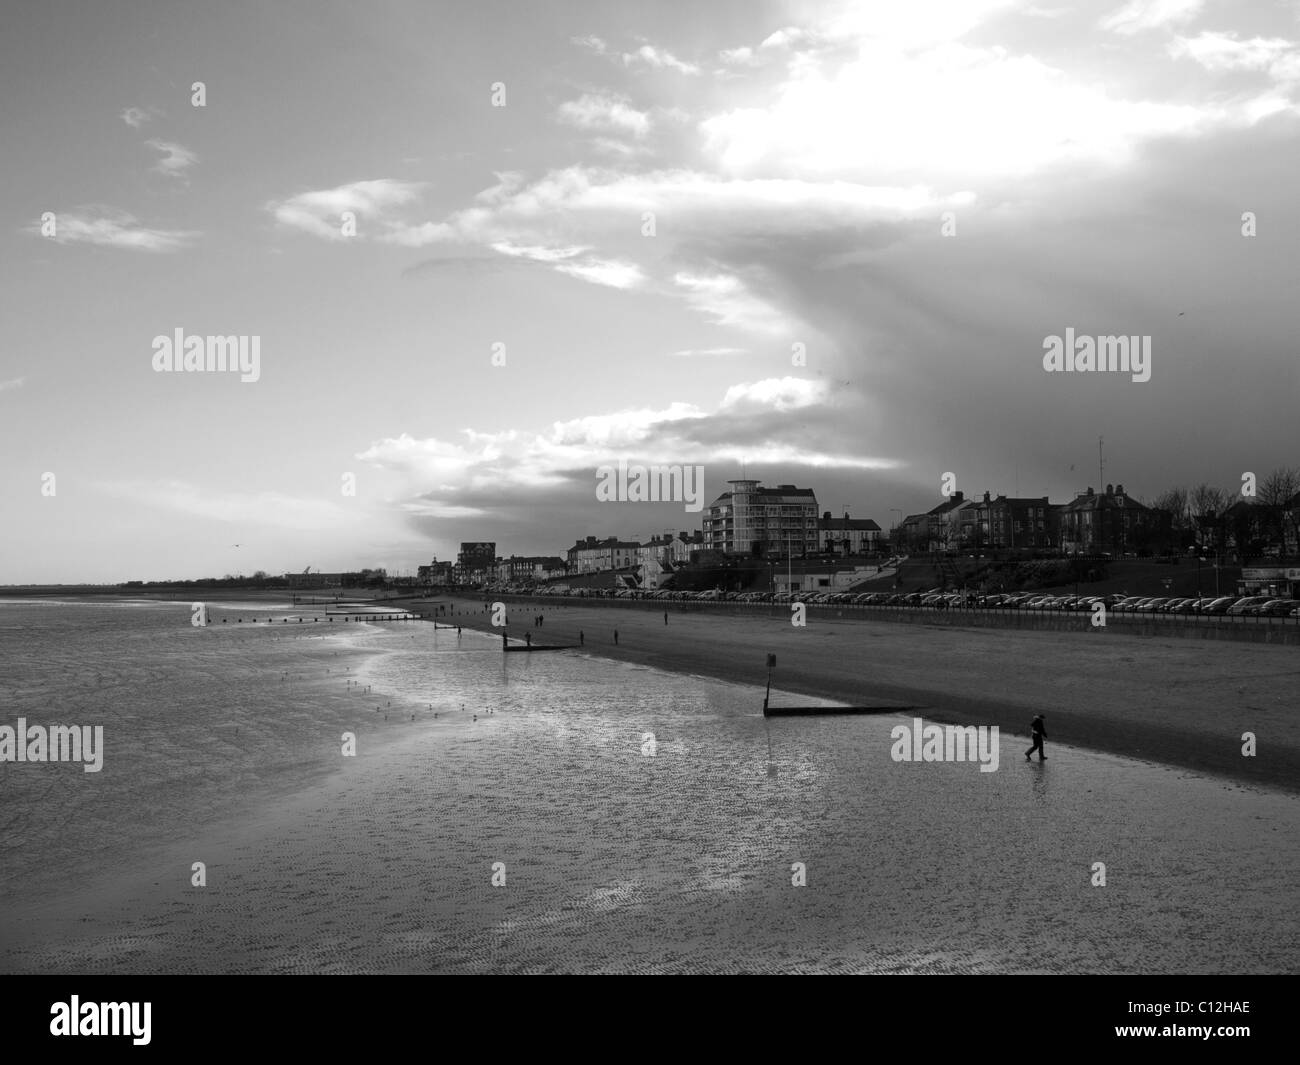 Beach at Cleethorpes North East Lincolnshire Feb 2011 - Stock Image